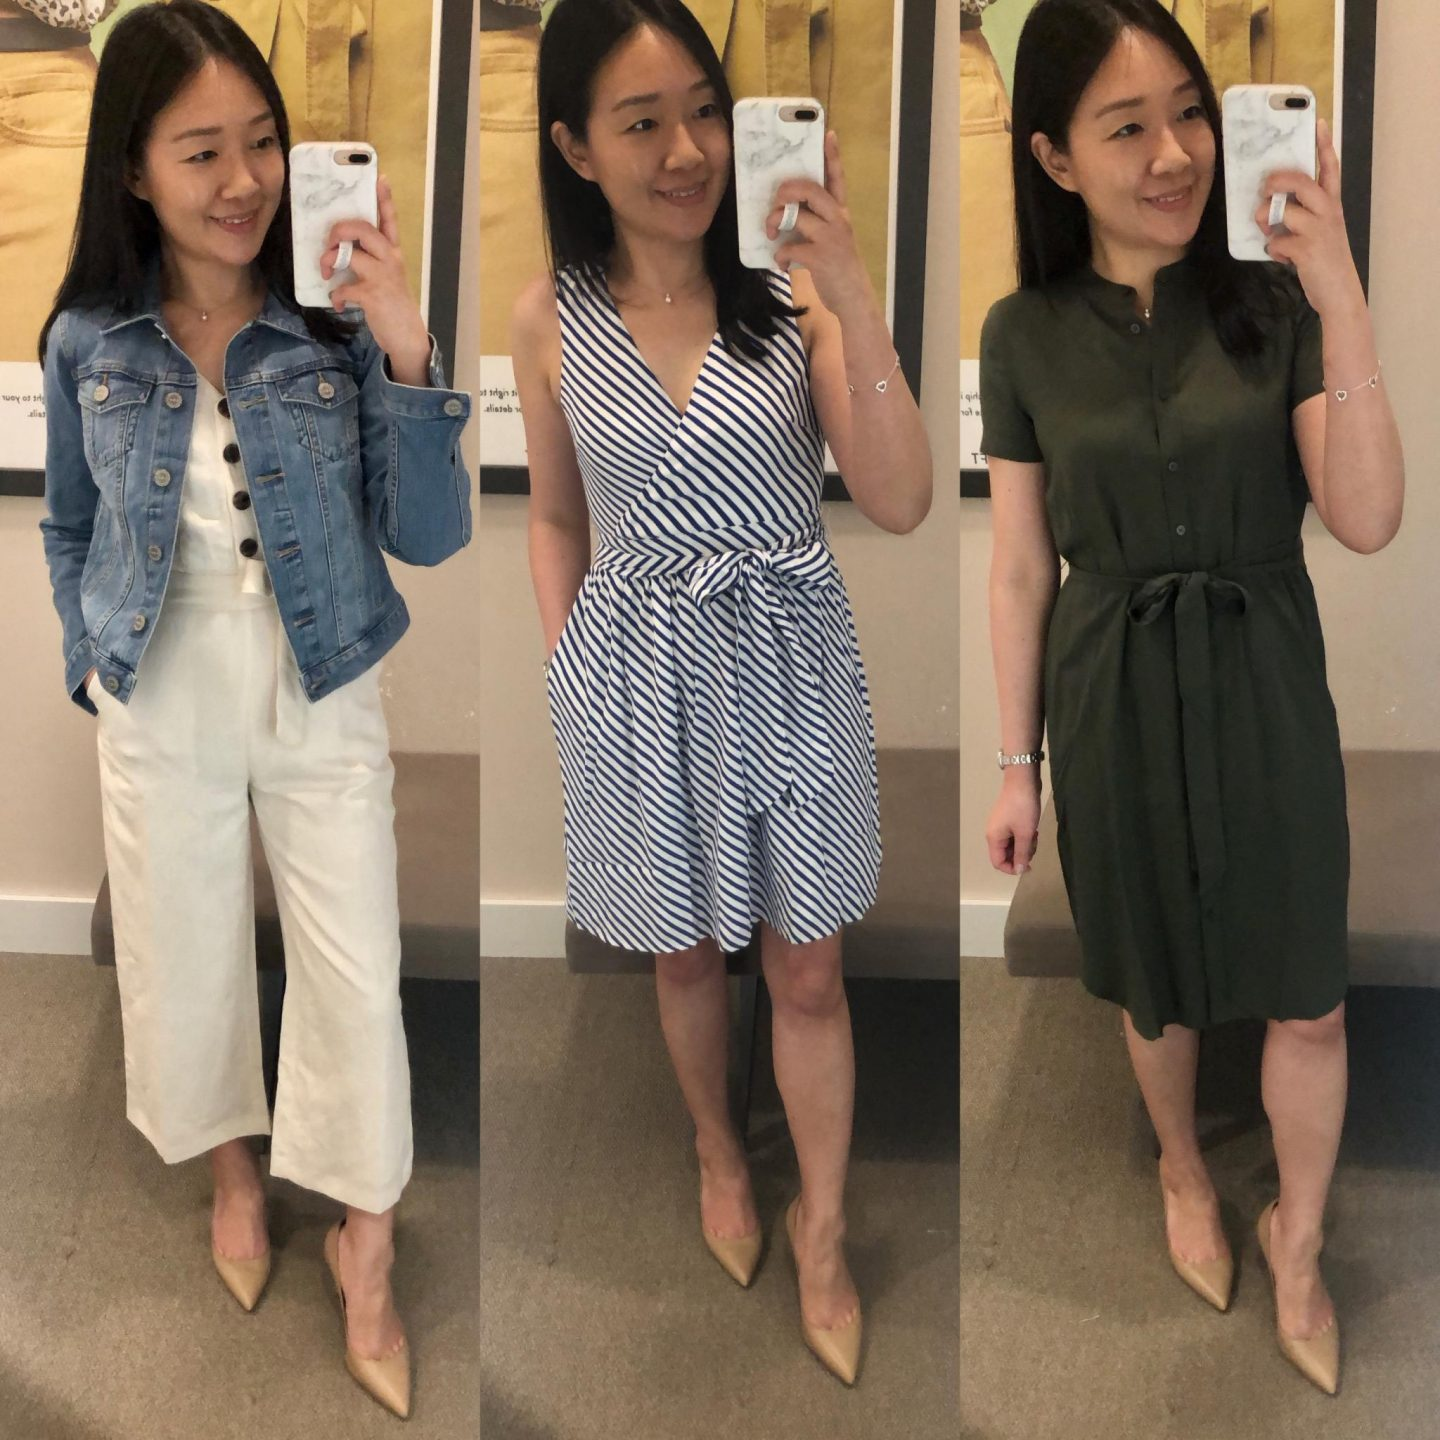 LOFT Fitting Room Reviews on www.whatjesswore.com